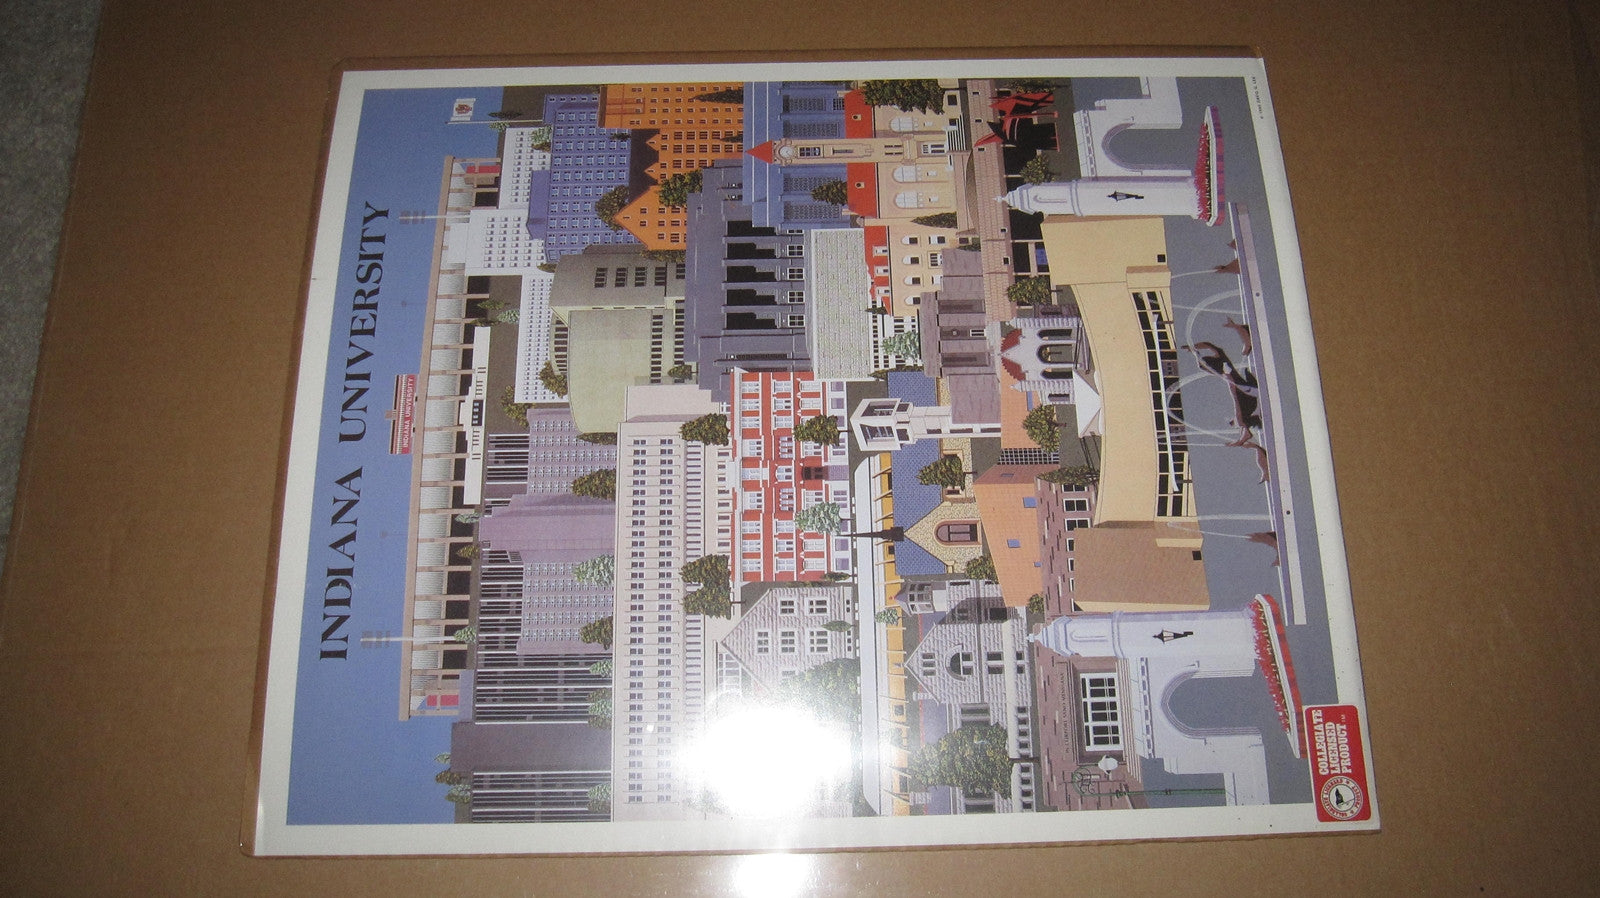 Indiana University 1990 David Lee Campus Print 16x20 - Vintage Indy Sports